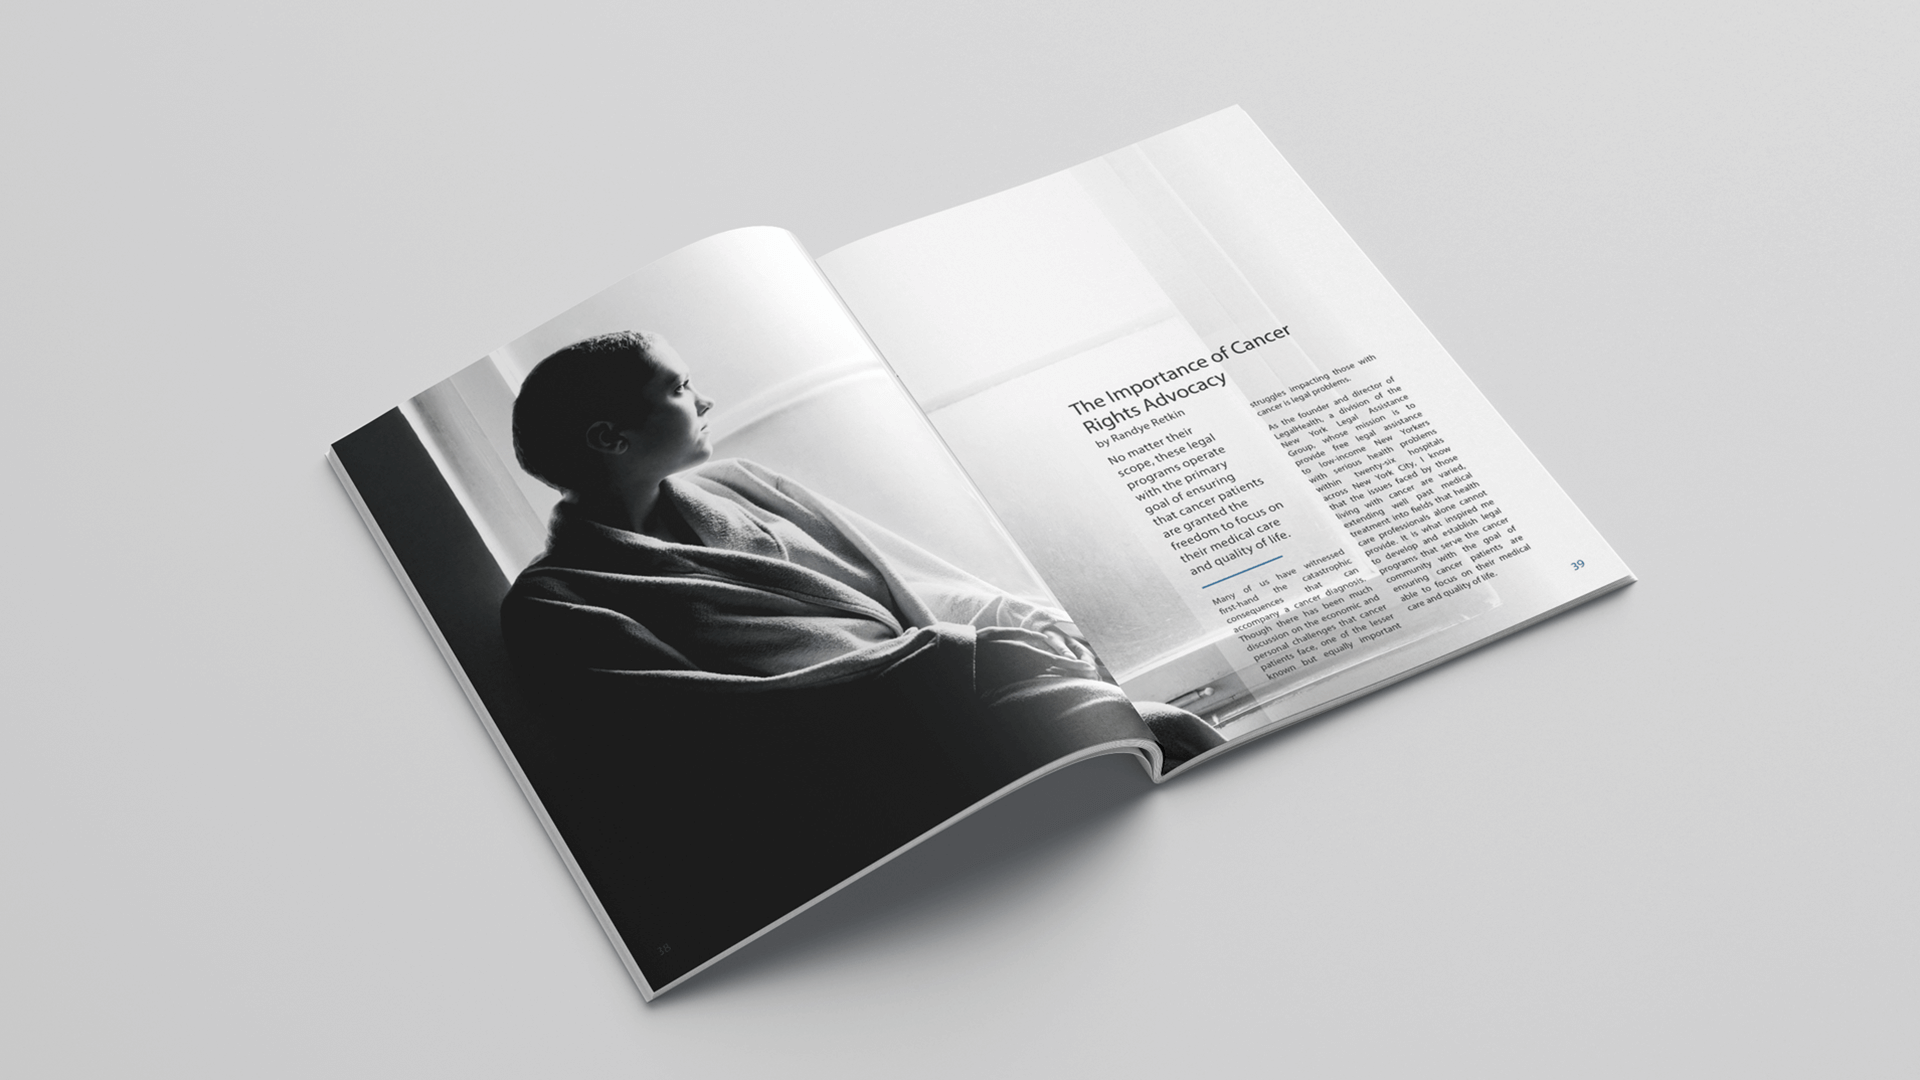 Disability Rights Legal Center Booklet spread mockup